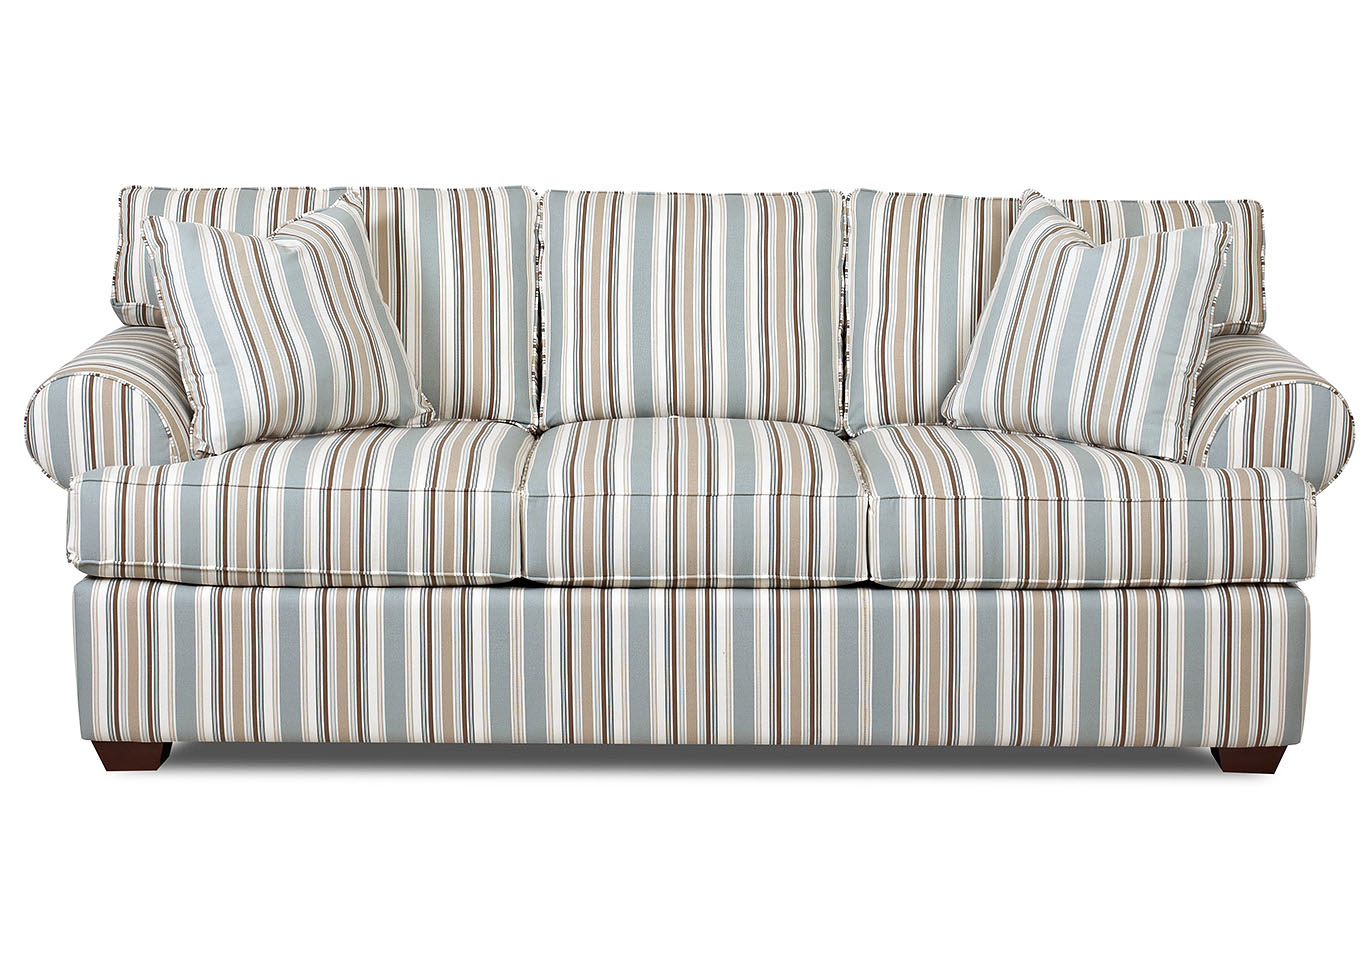 Lady Cocoa Striped Stationary  Sofa,Klaussner Home Furnishings